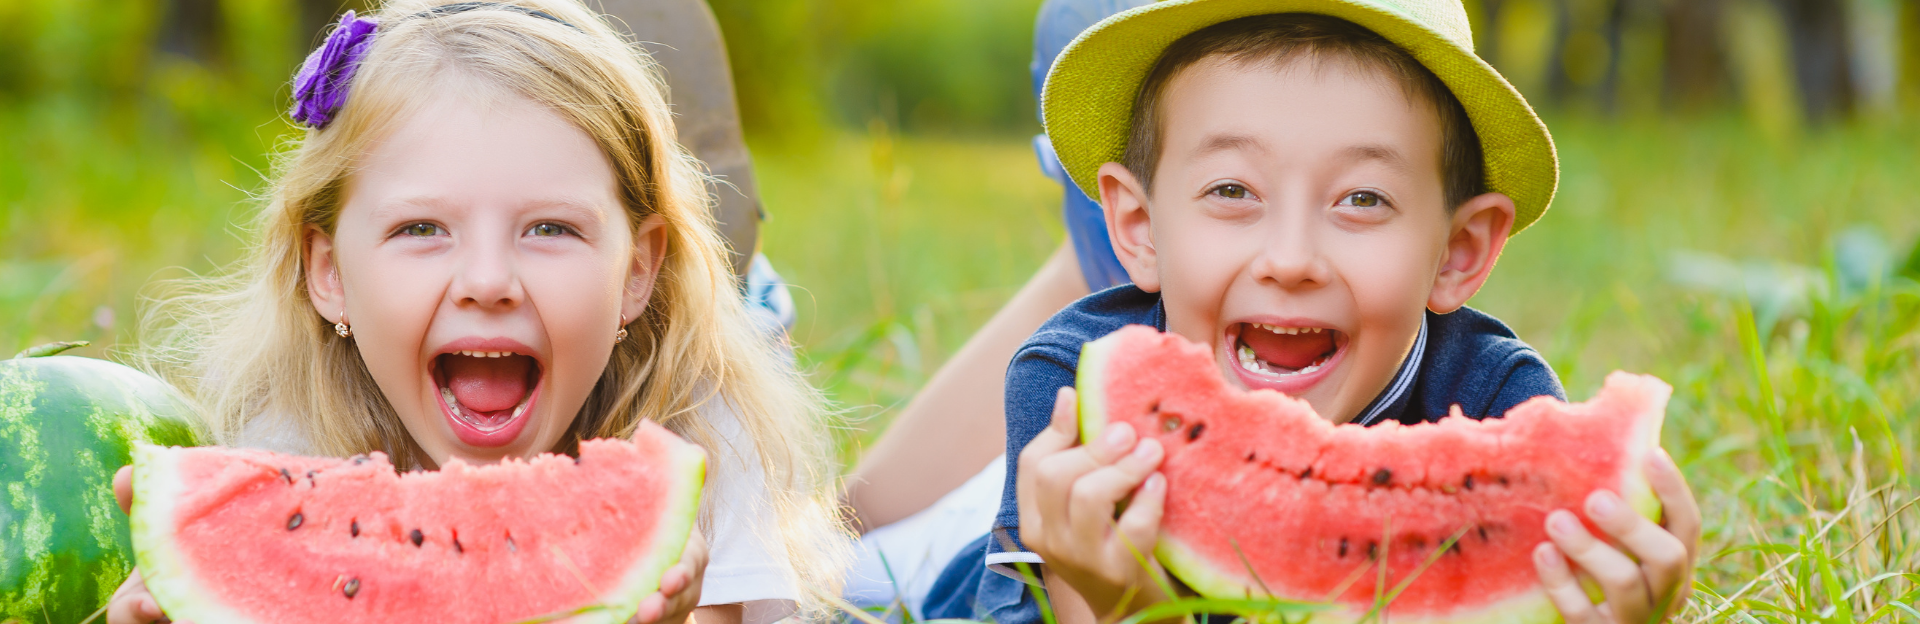 Reasons why a healthy eating plan is important for children